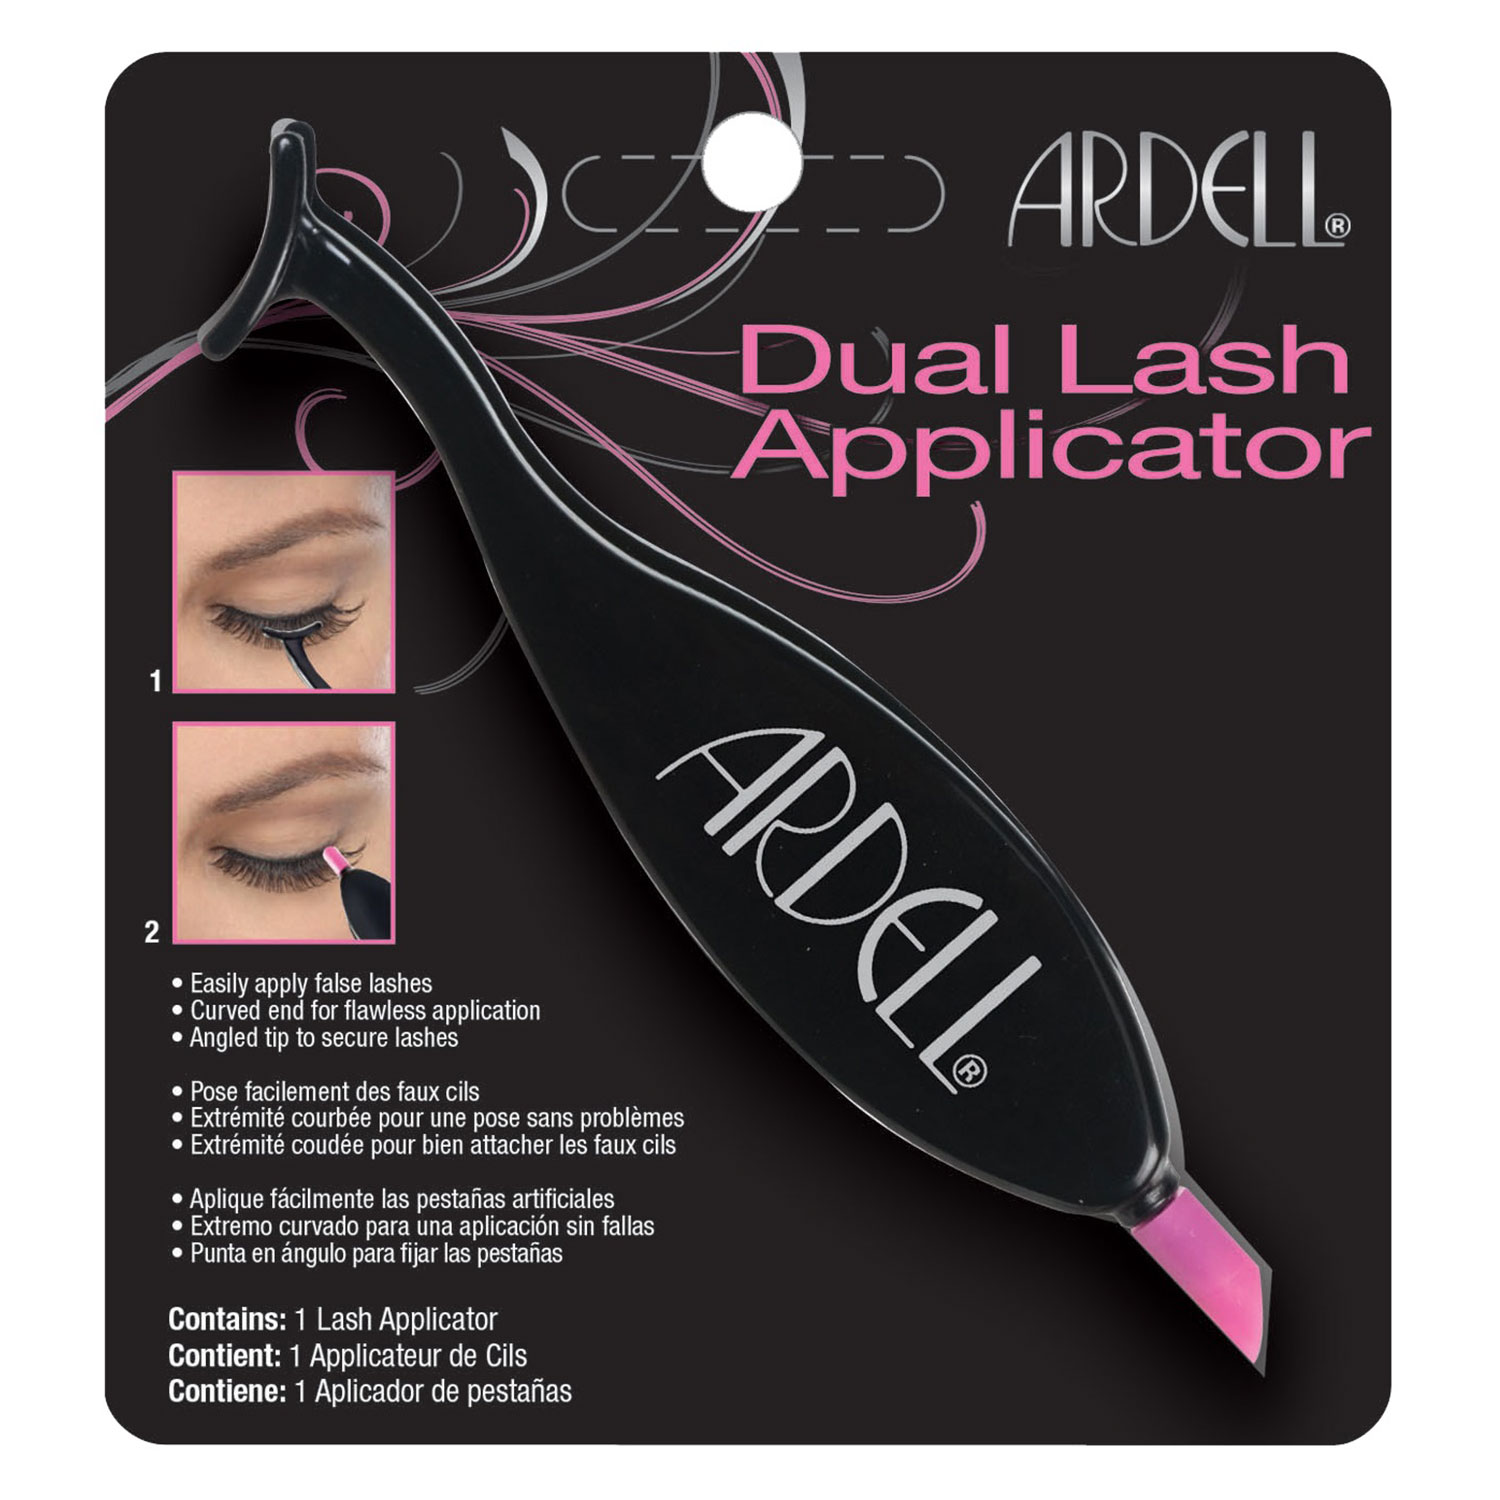 Ardell Tools - Dual Lash Applicator